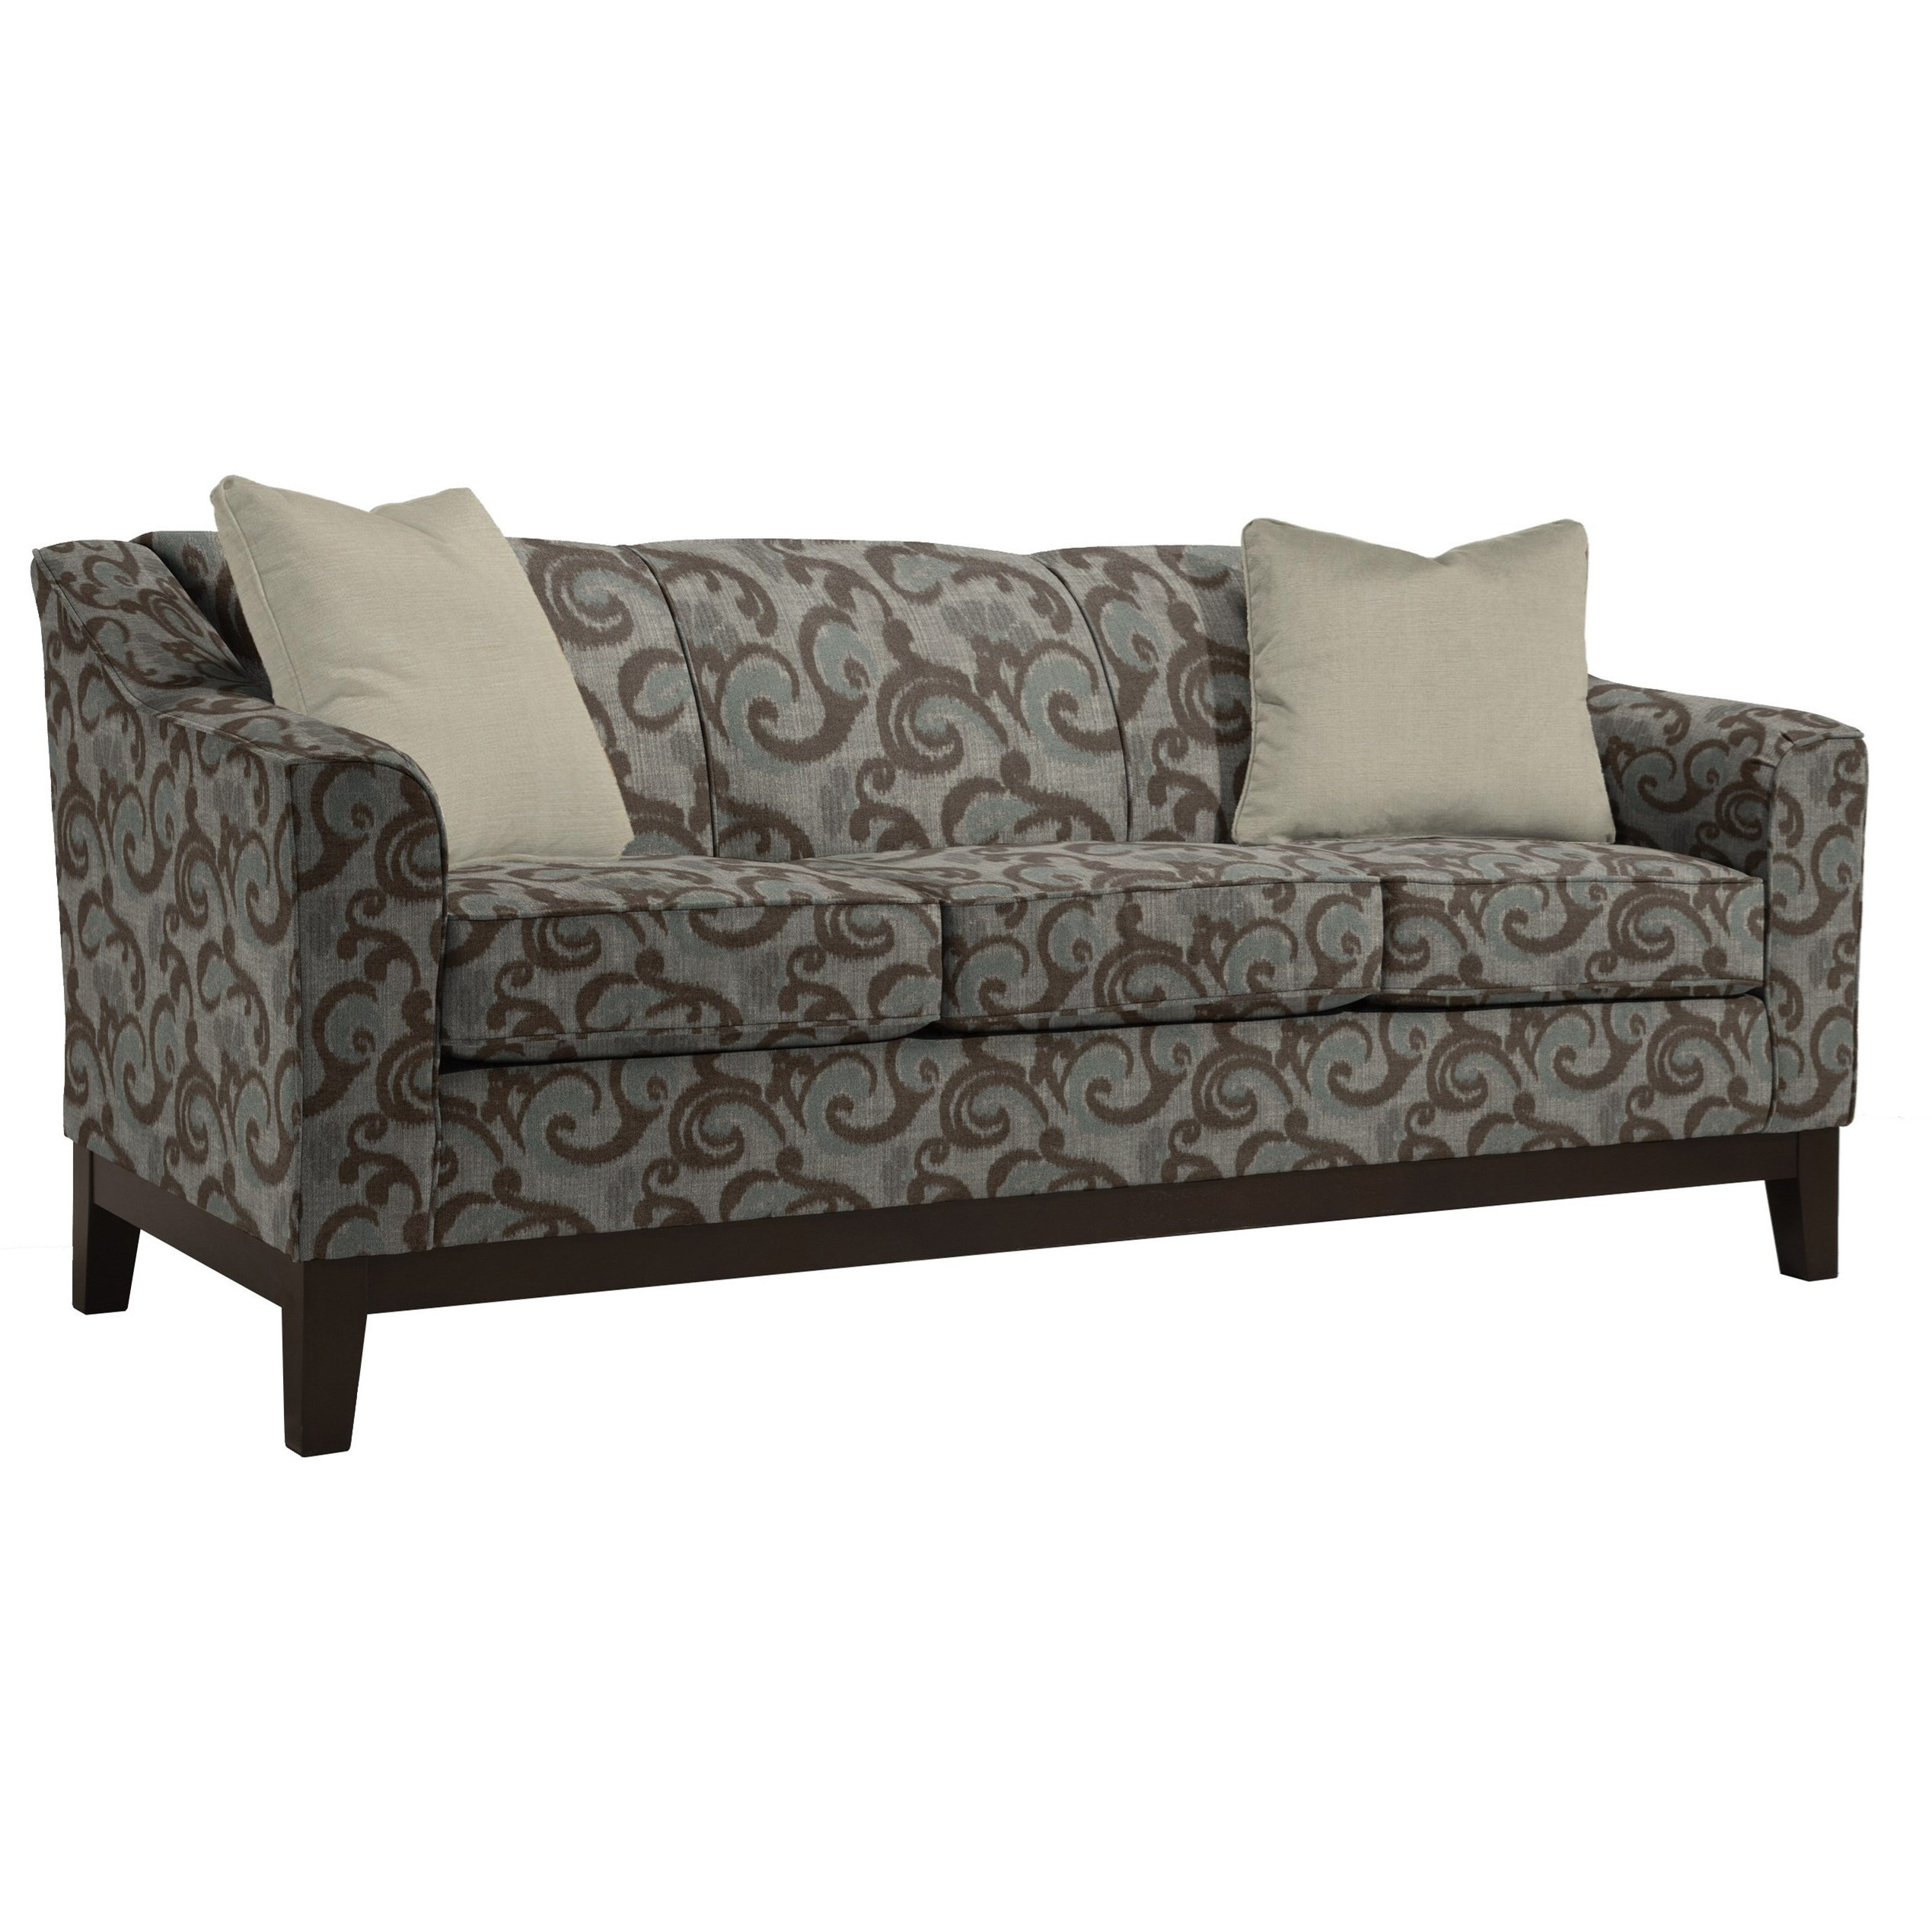 Best Home Furnishings Emeline Customizable Sofa - Item Number: 206338137-28823